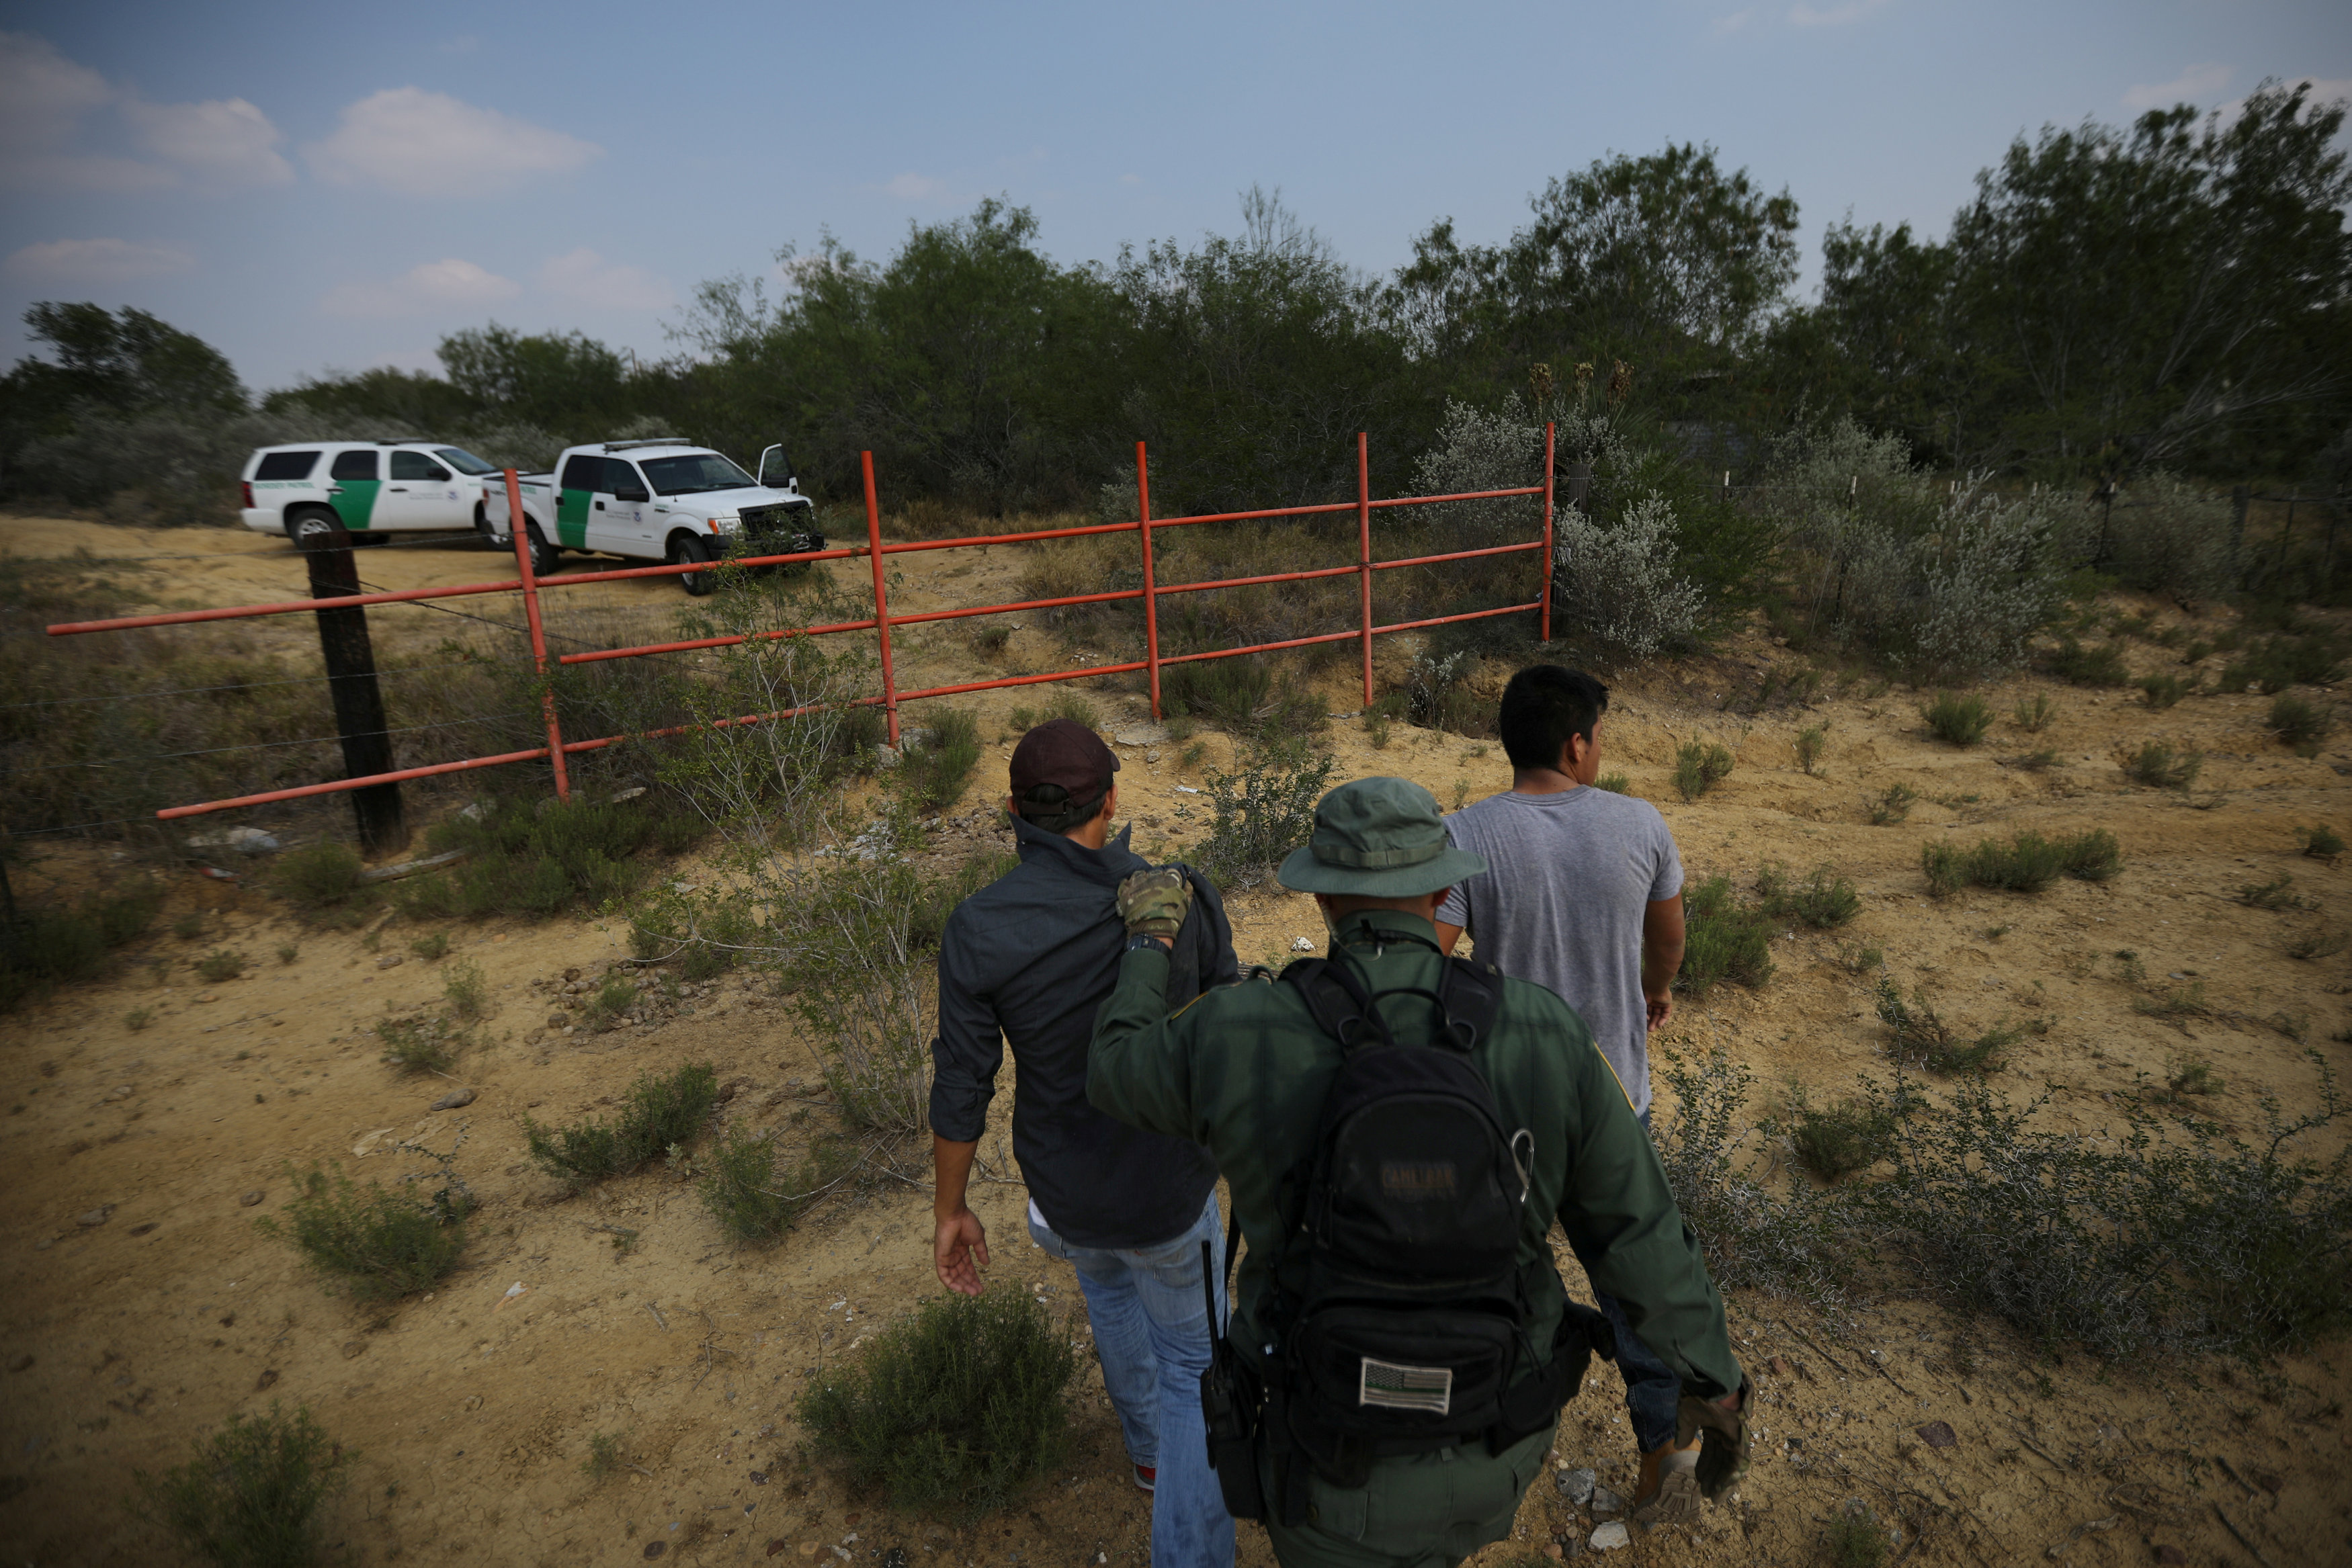 FILE PHOTO - A U.S. border patrol agent escorts men being detained after entering the United States by crossing the Rio Grande river from Mexico, in Roma, Texas, U.S. on May 11, 2017. REUTERS/Carlos Barria/File Photo